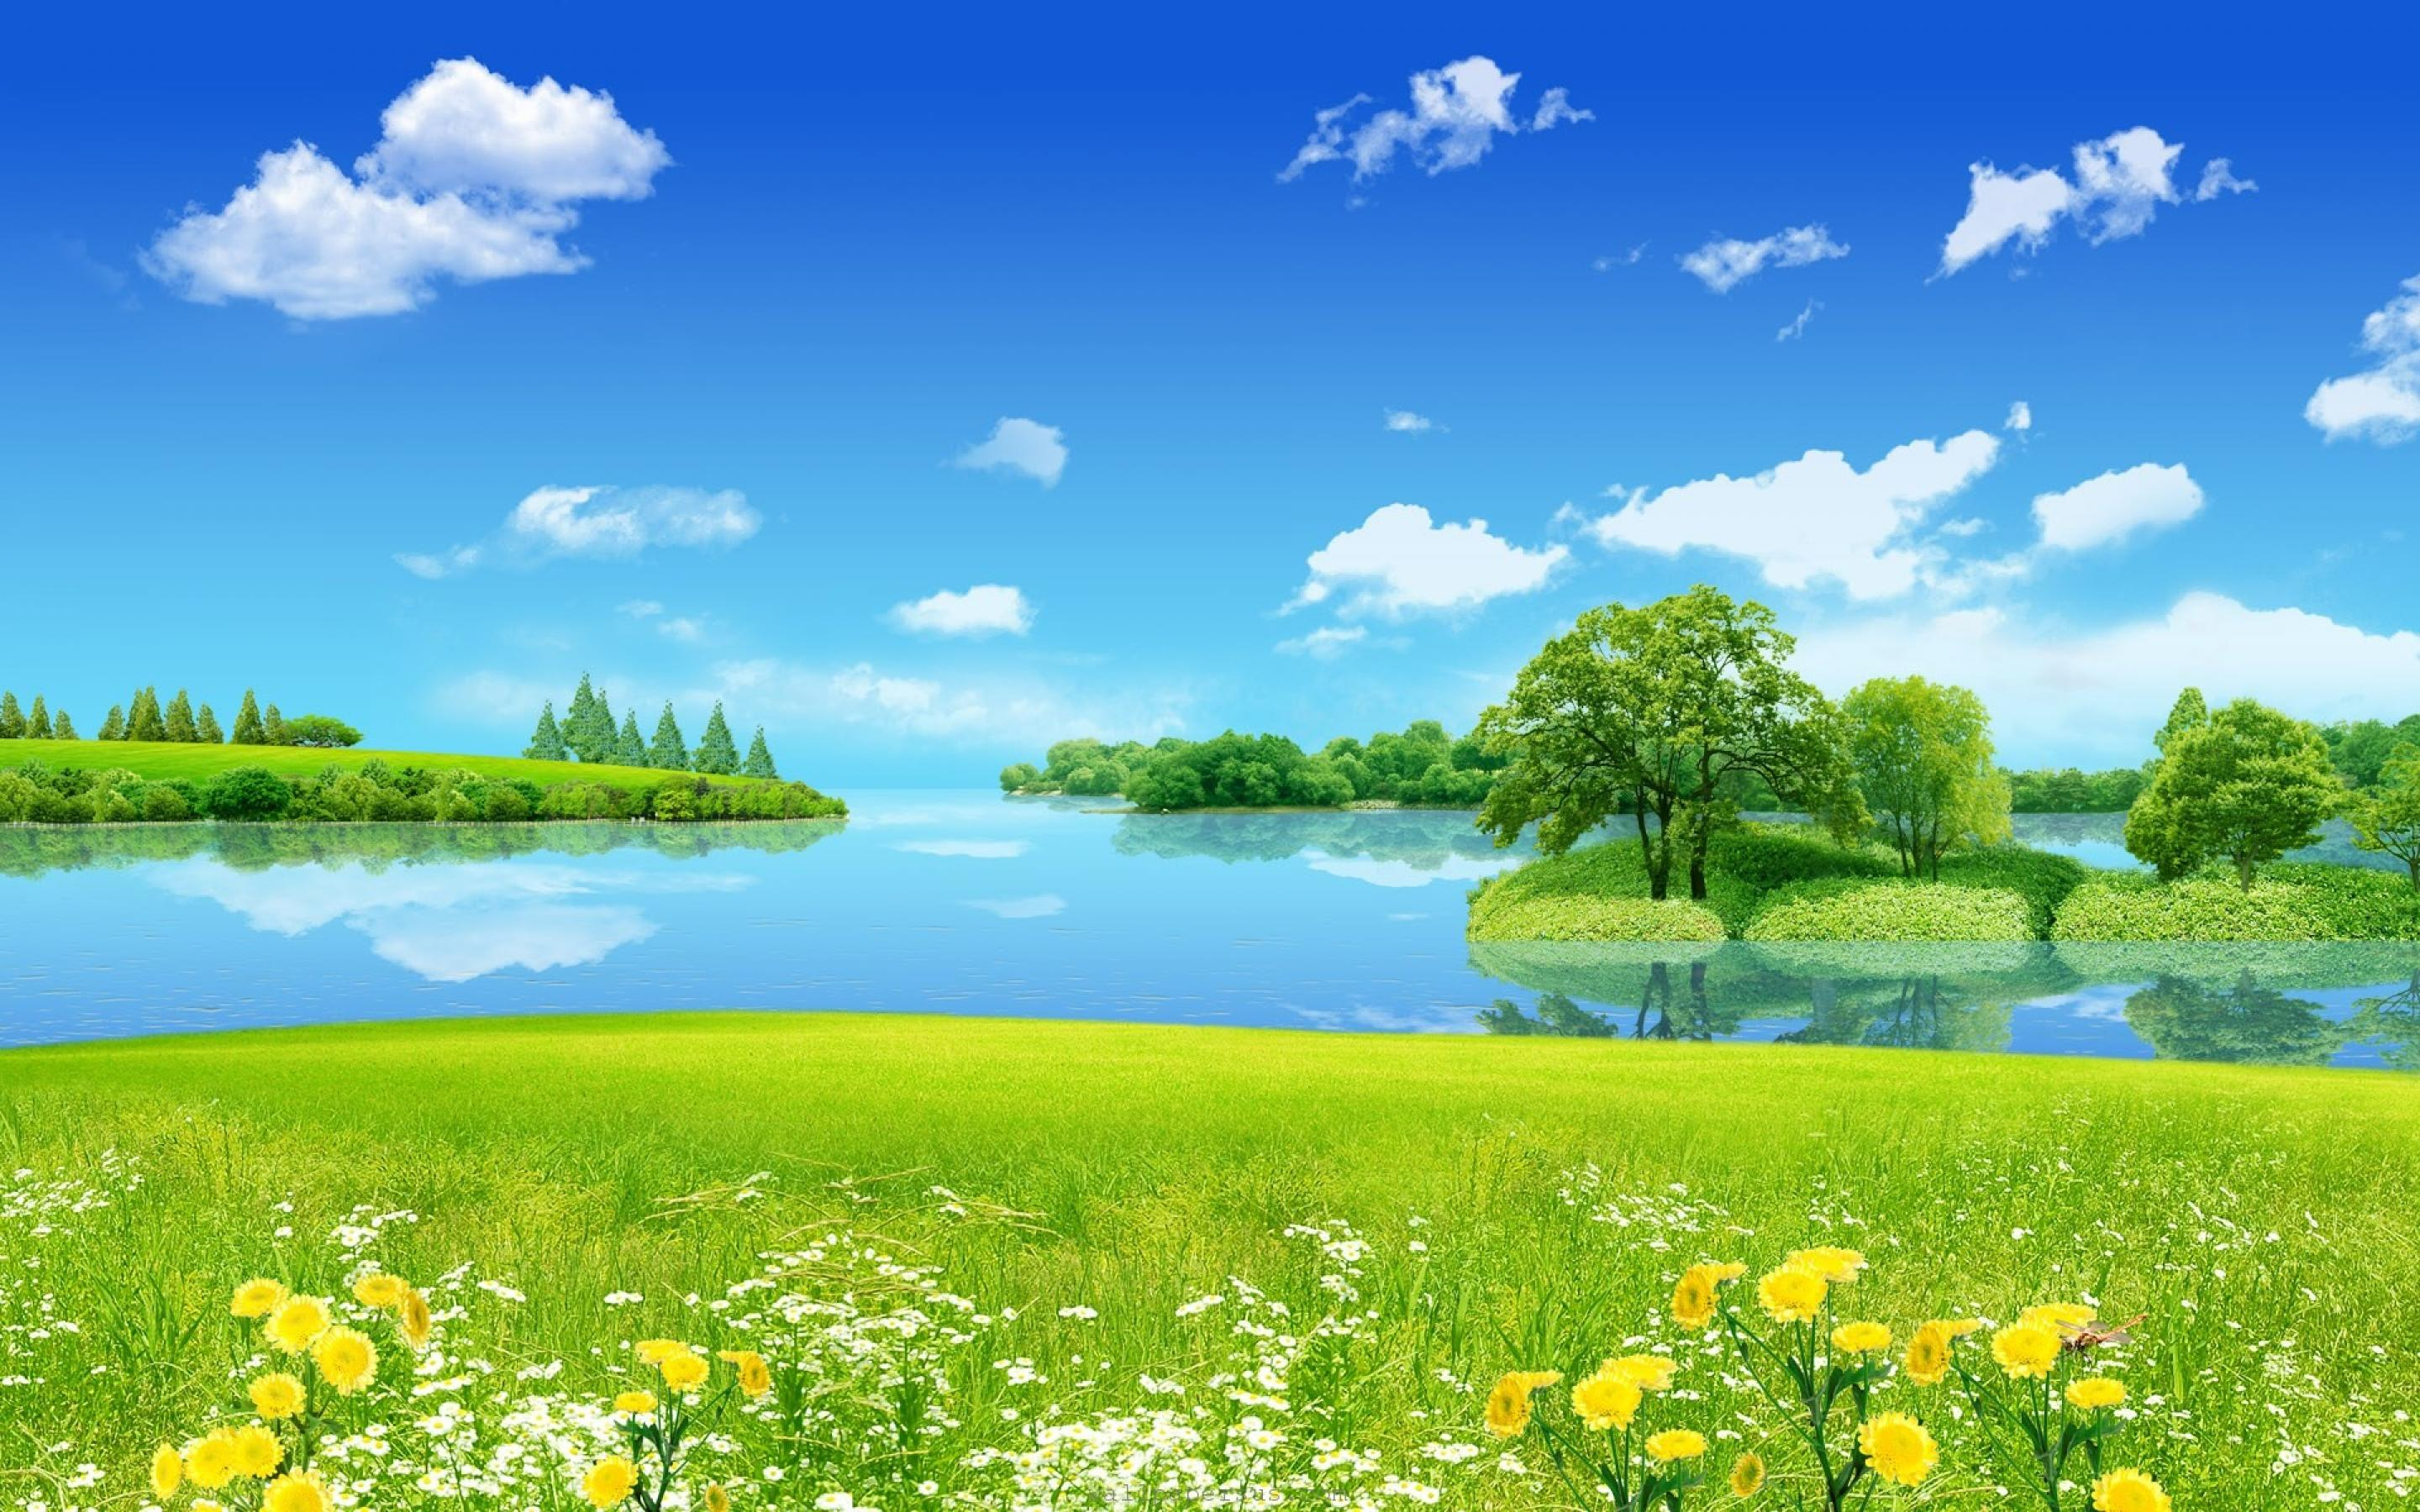 HD Wallpapers Of Nature Beauty